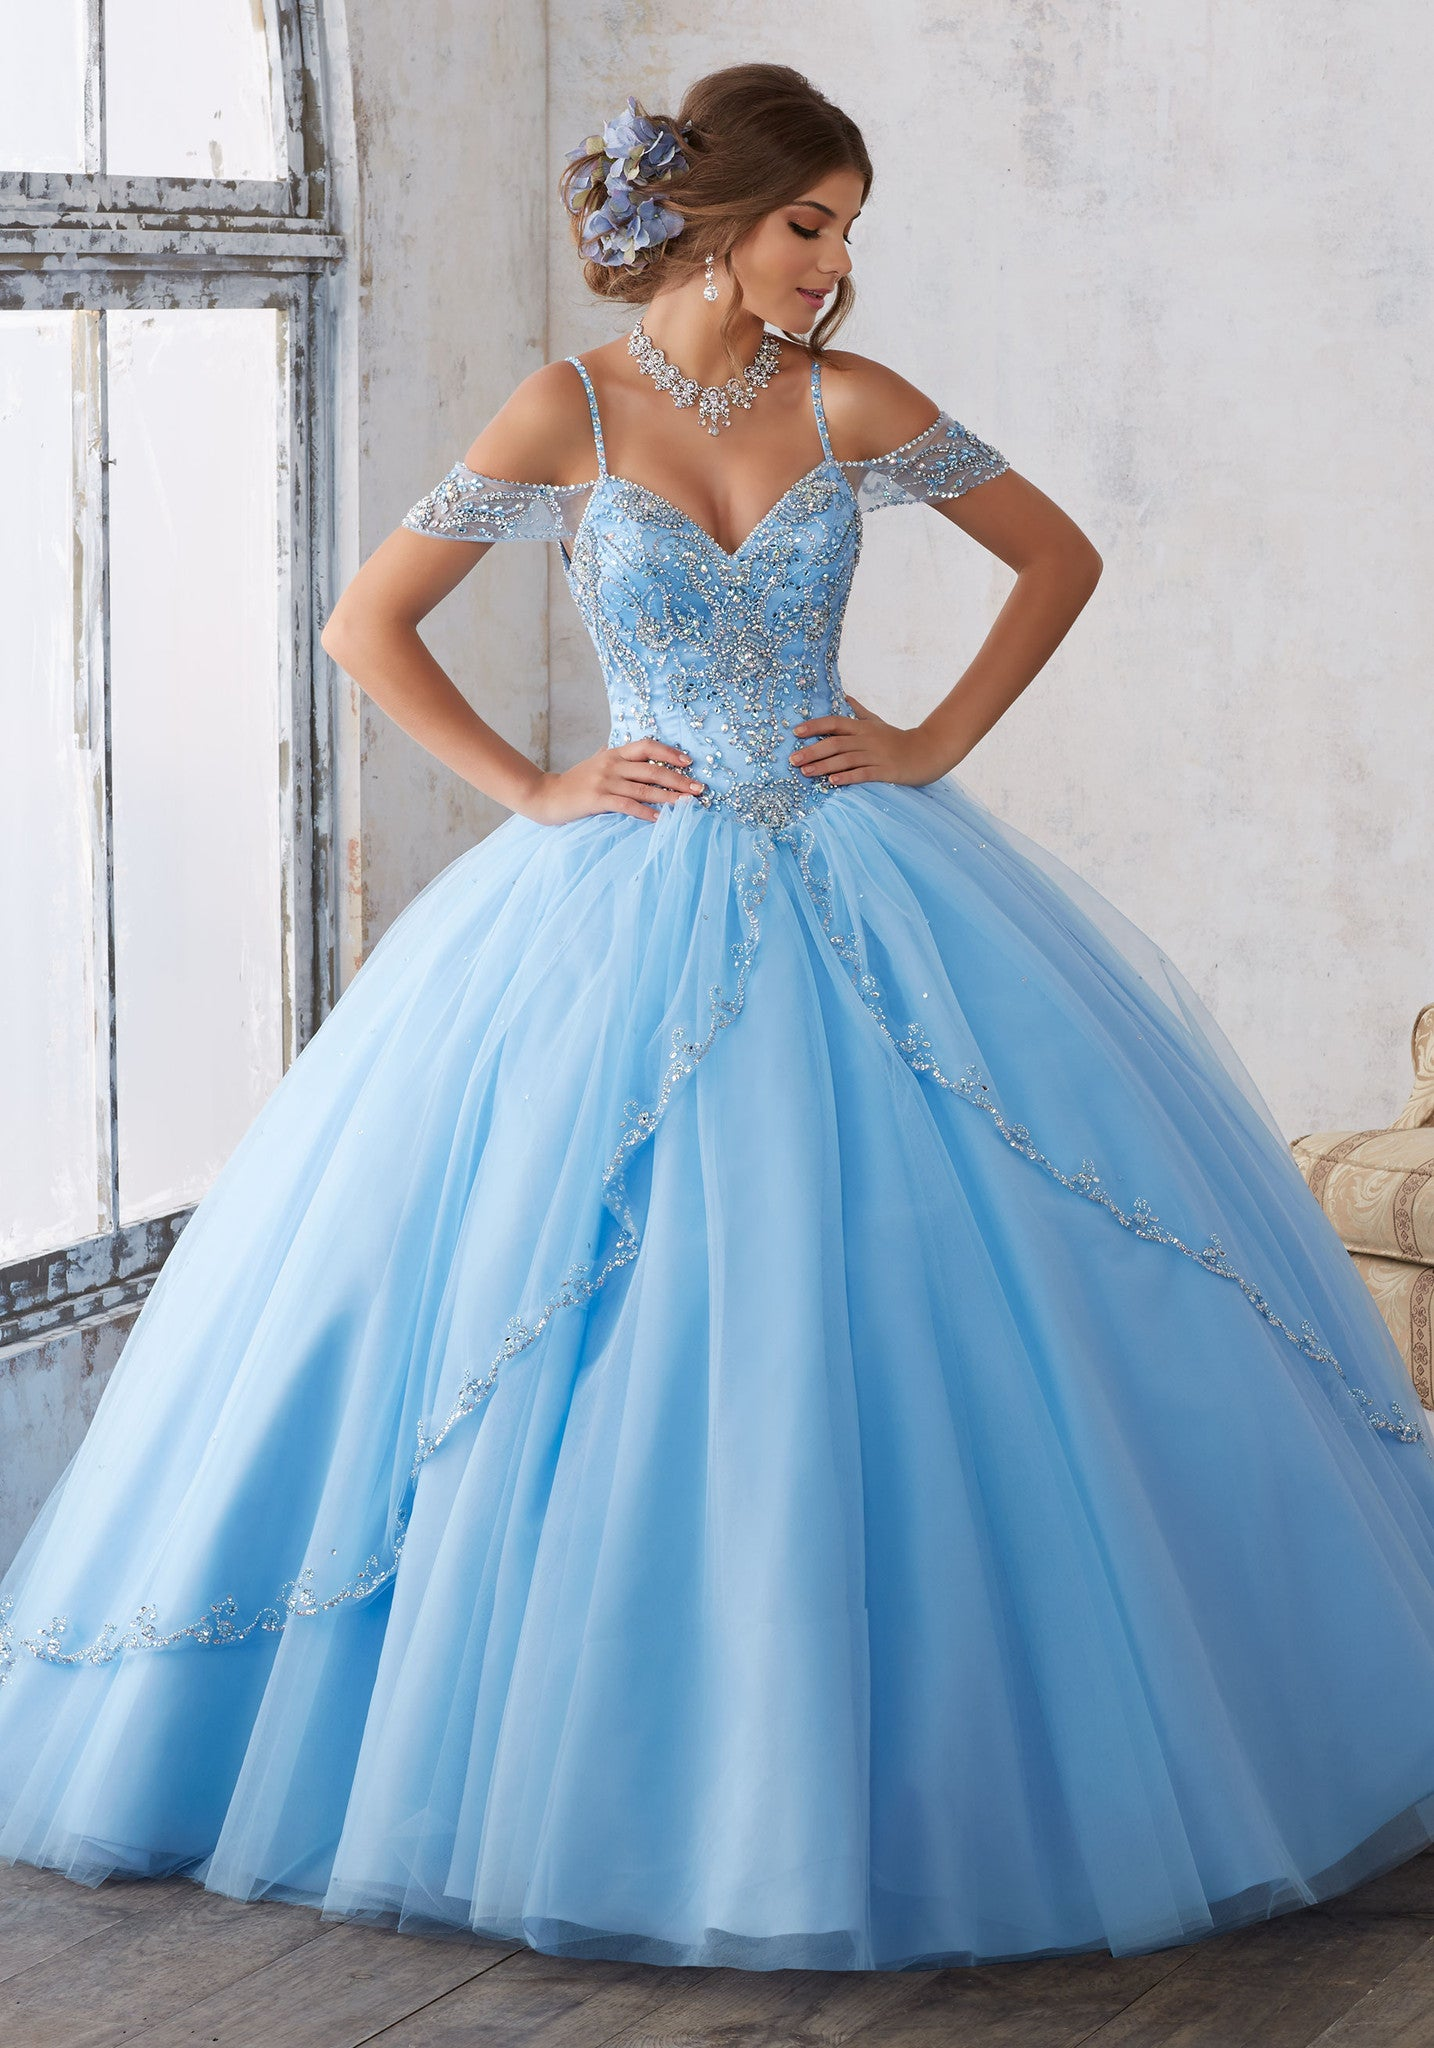 Quinceanera Dresses, Sweet 16 Dresses, Tiaras, Accessories & More